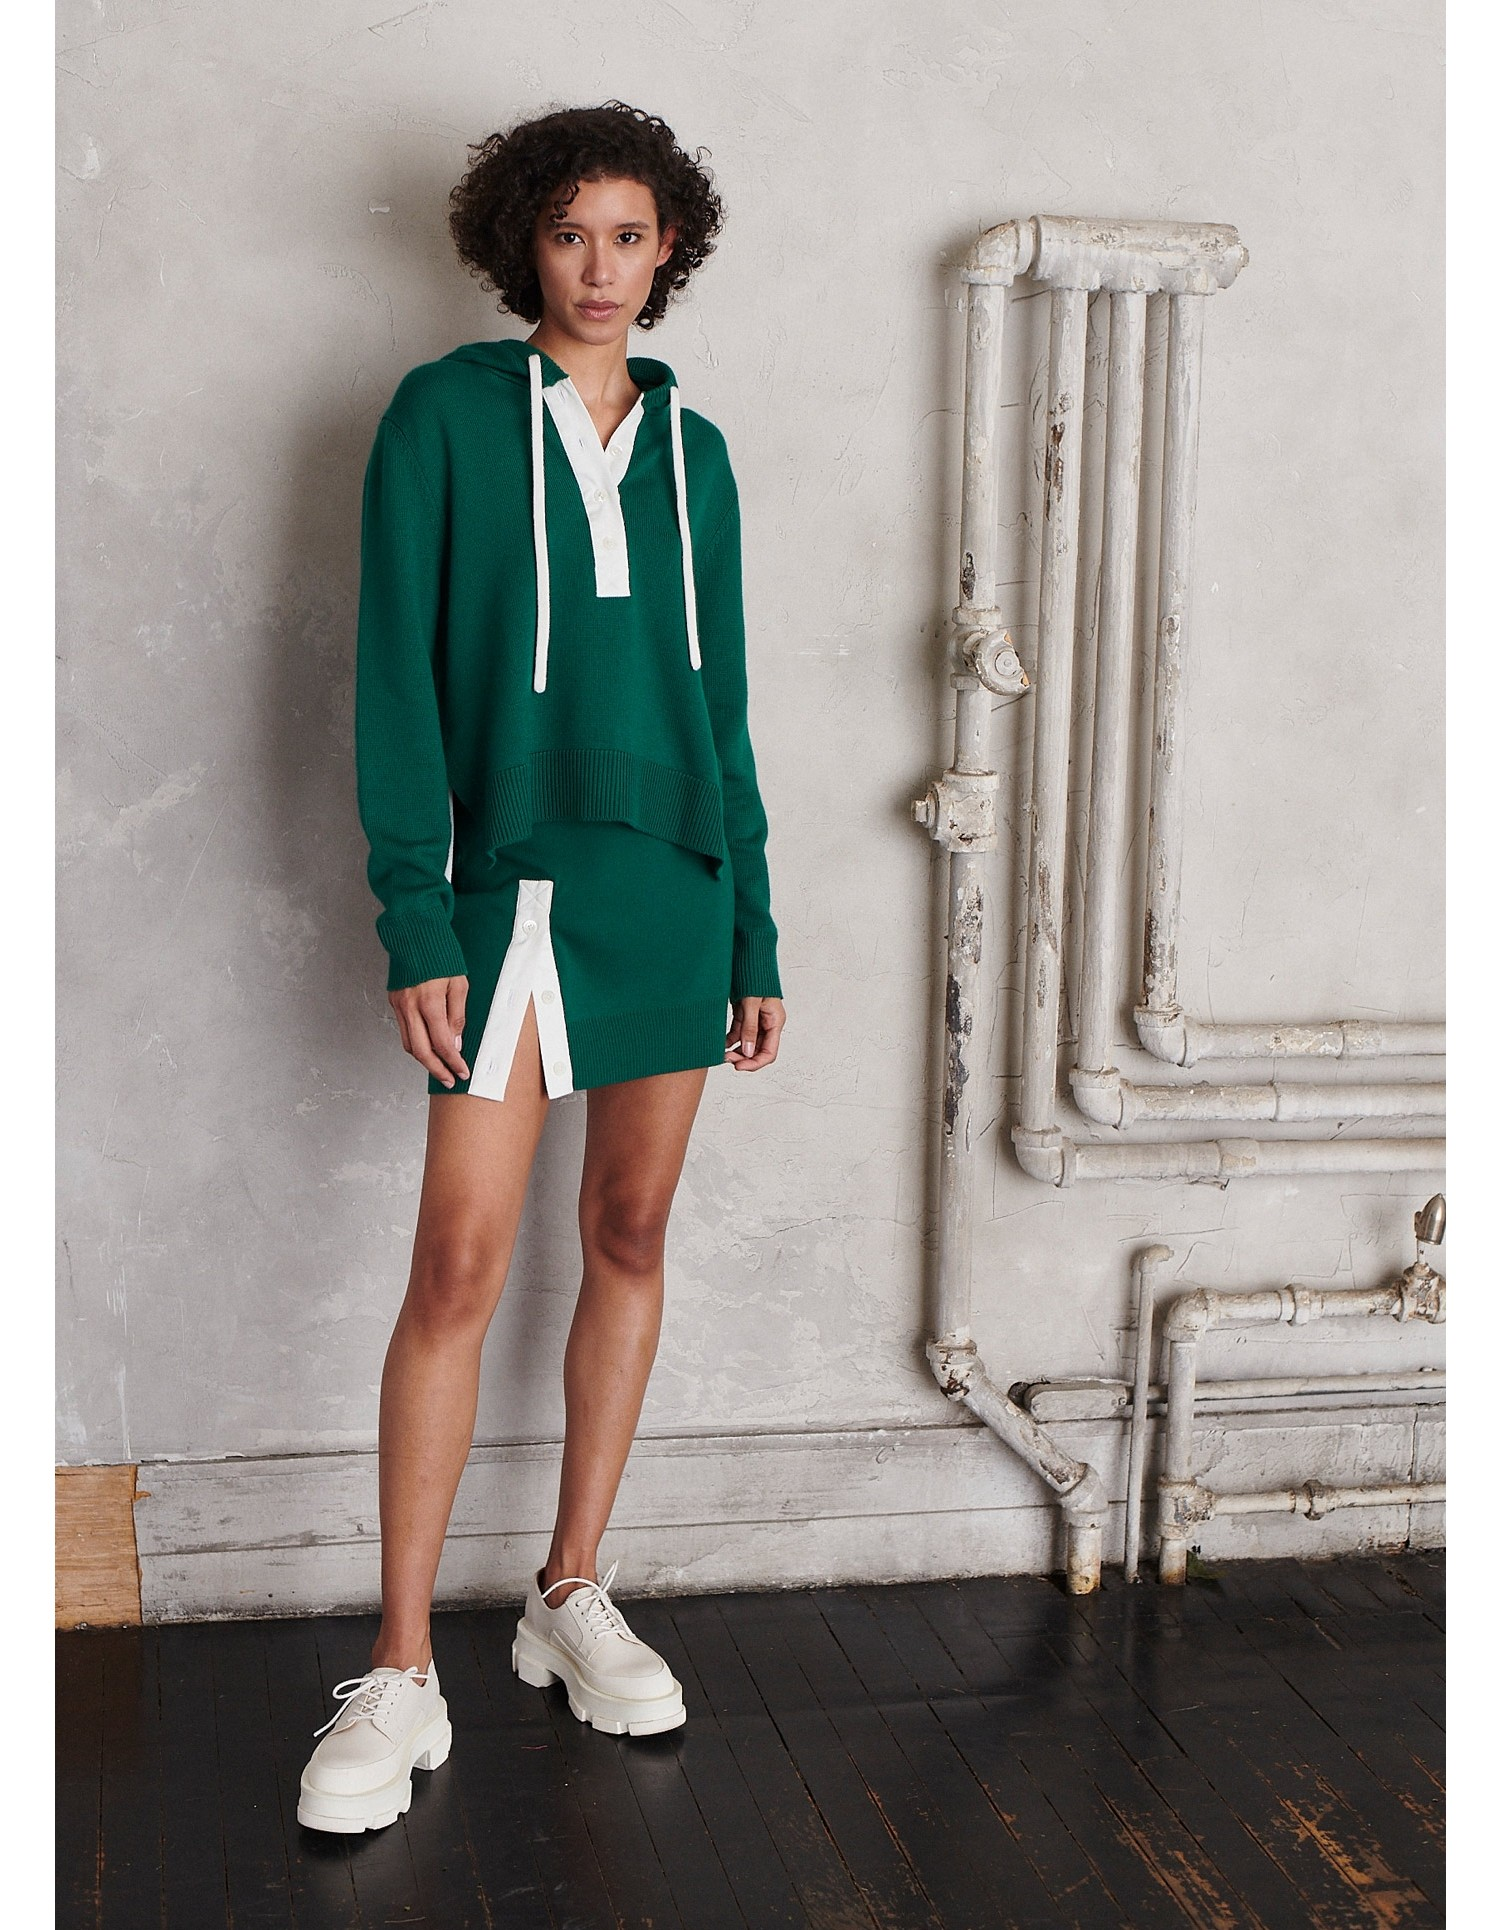 MONSE Rugby Knit Hoodie in Grass and Ivory on Model Front View